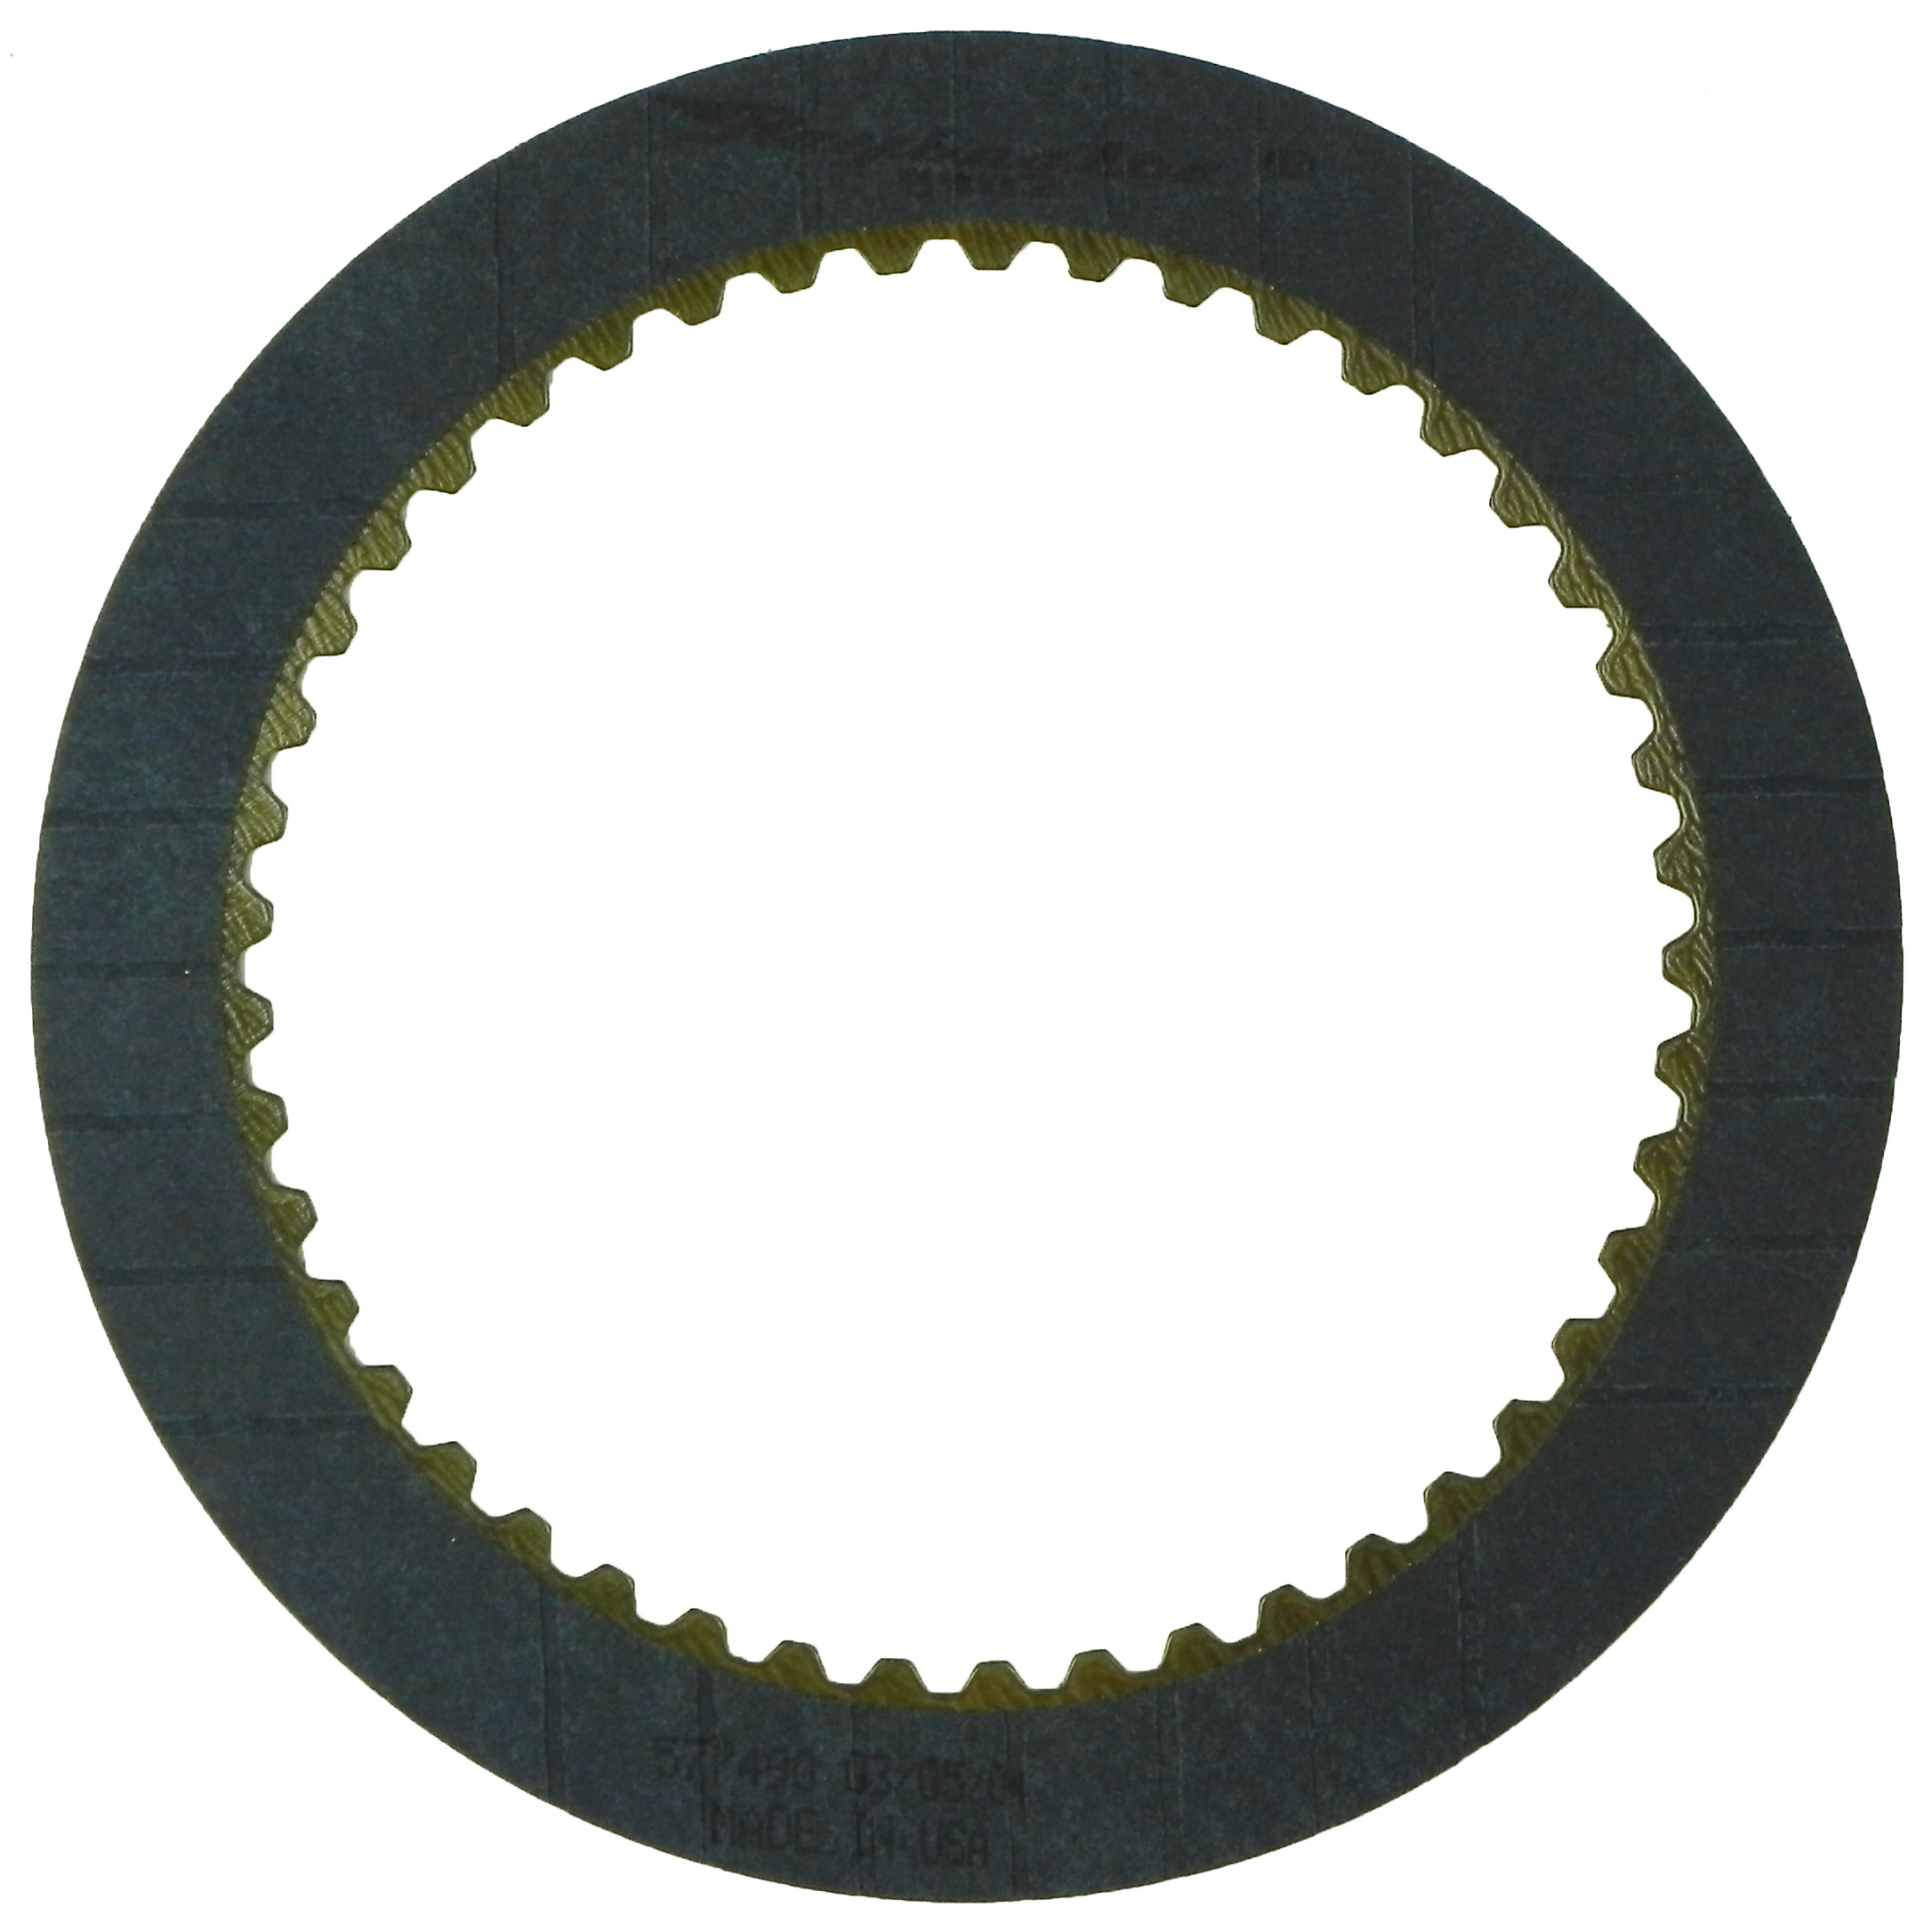 R577490 | 1988-2004 Friction Clutch Plate GEN 2, Blue Plate Special Forward GEN 2